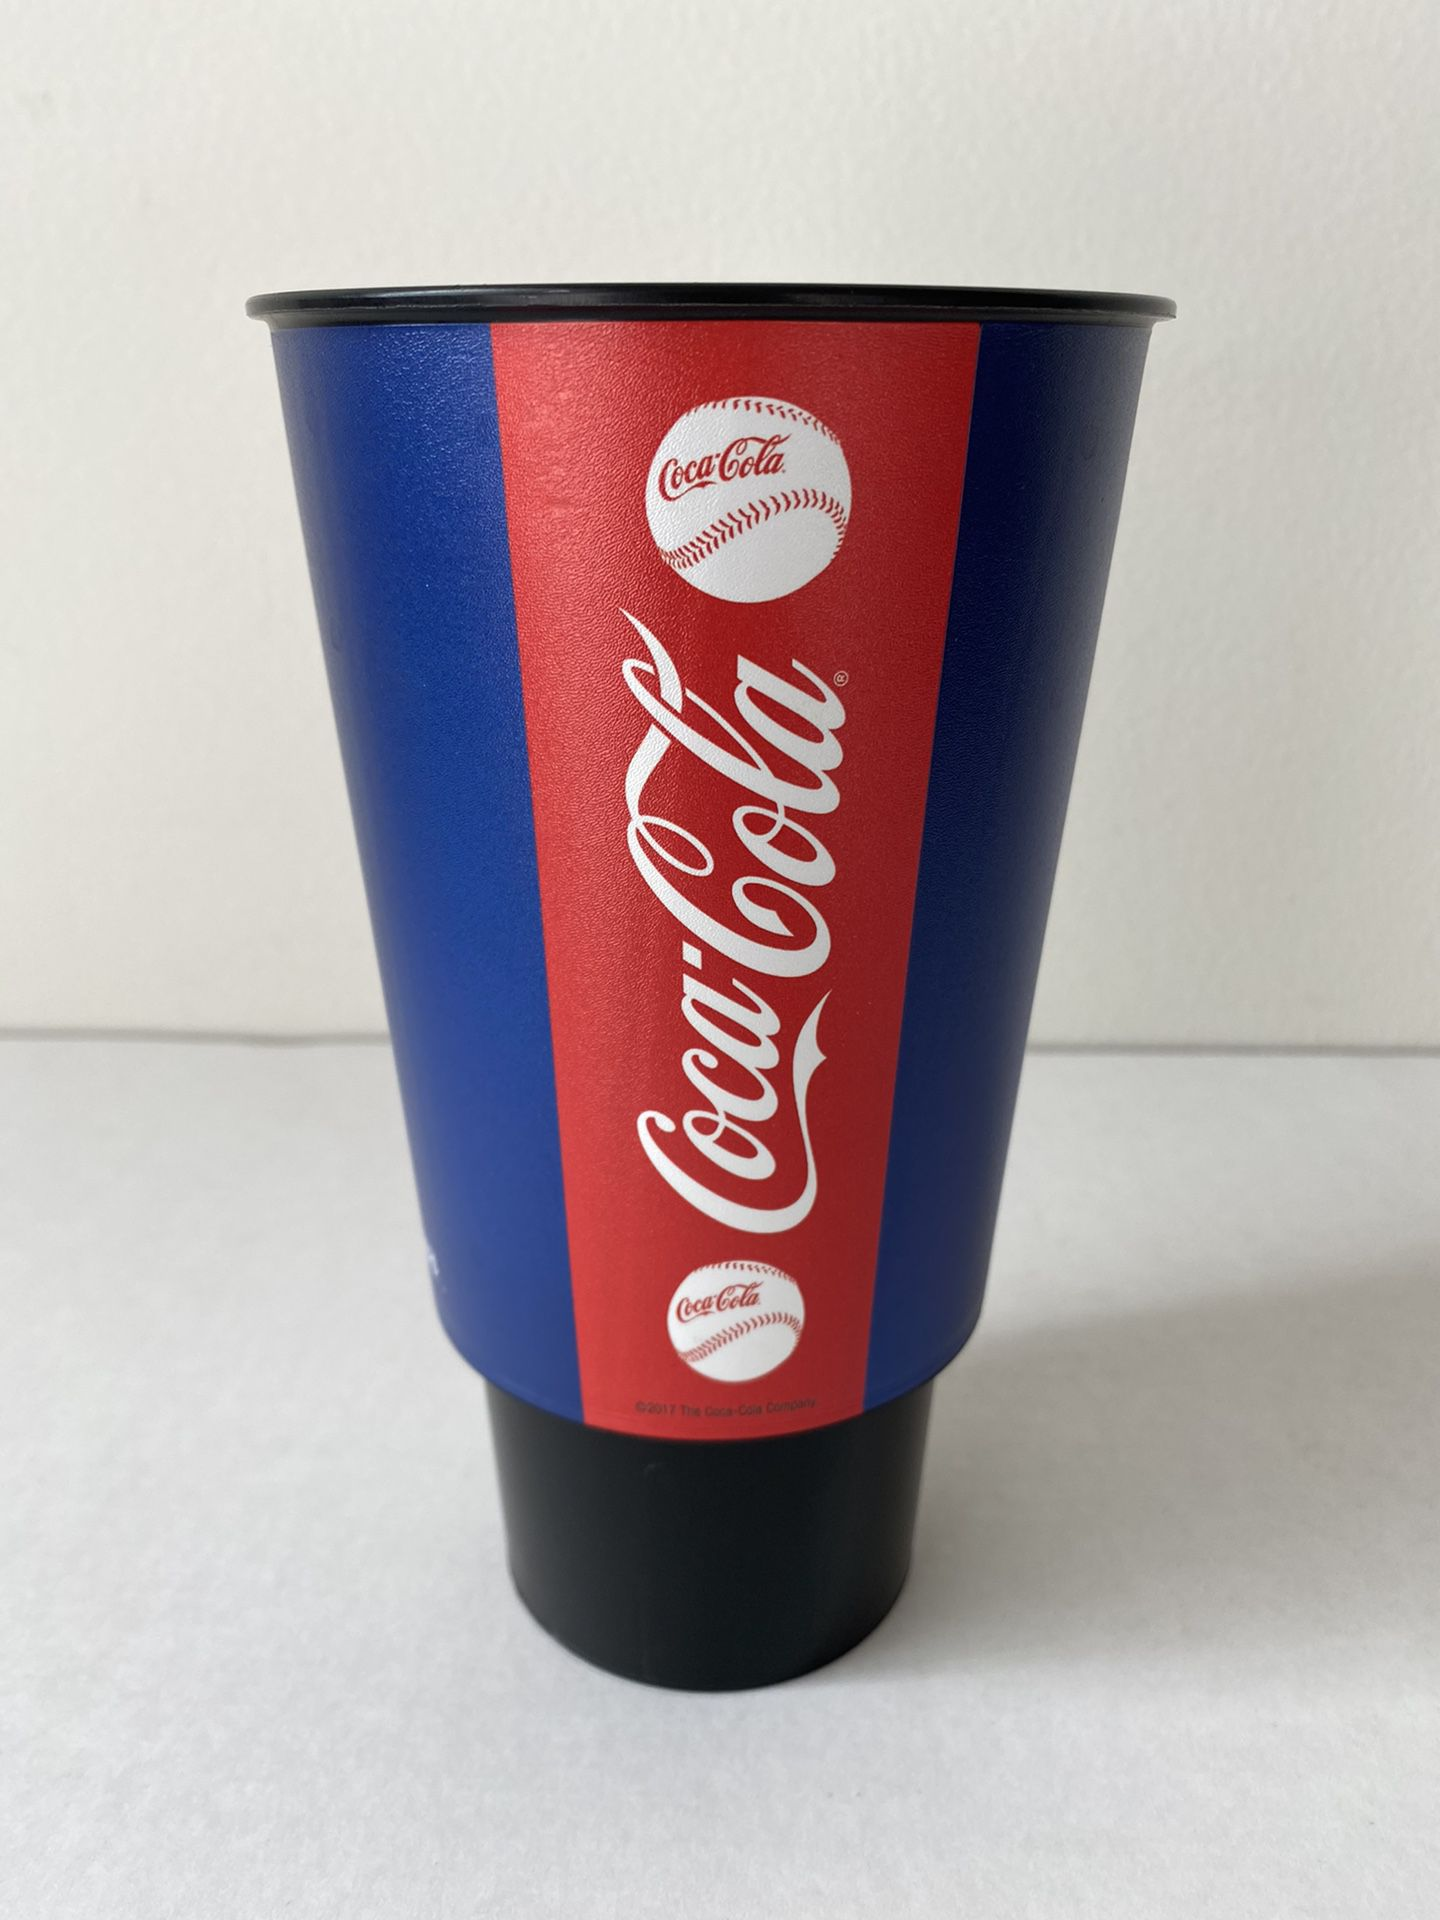 Set of 4 LA Dodgers NL Champions Cups from the 2017 season